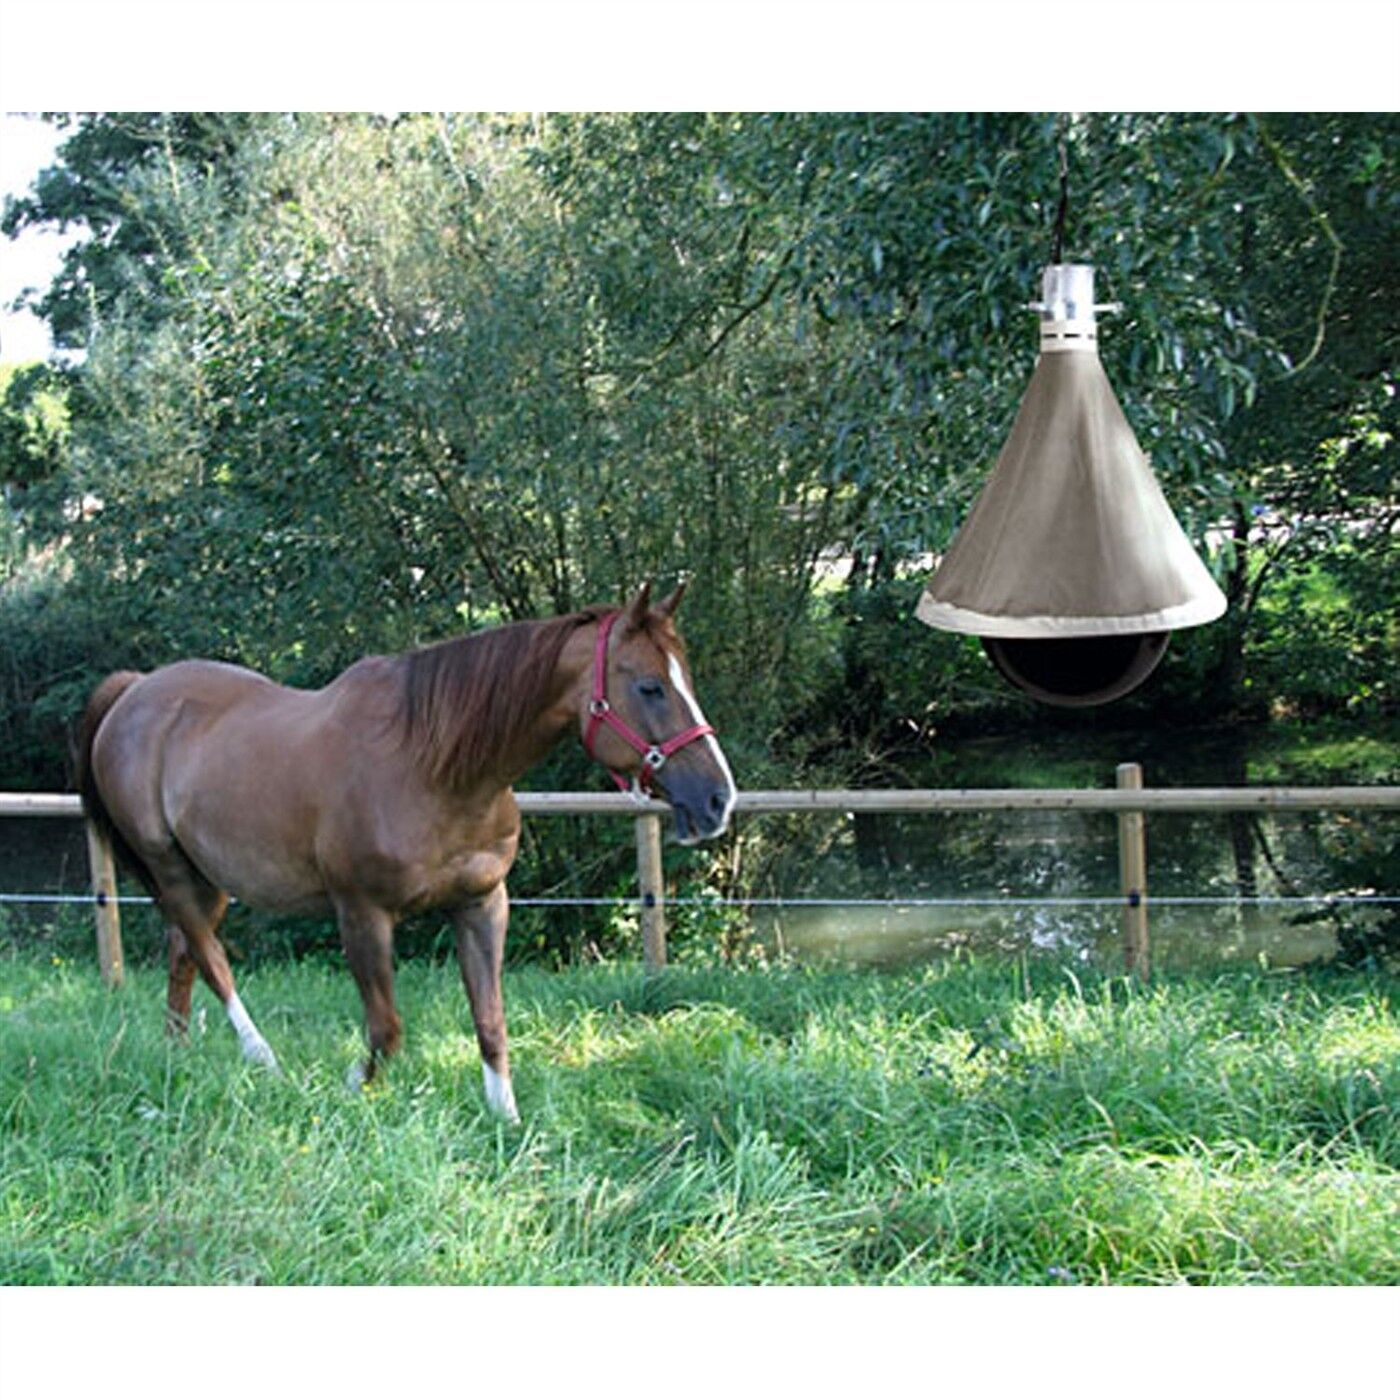 KERBL Horsefly Gadfly Insect Fly Trap TAON-X ECO Insects Pasture Horse Contol